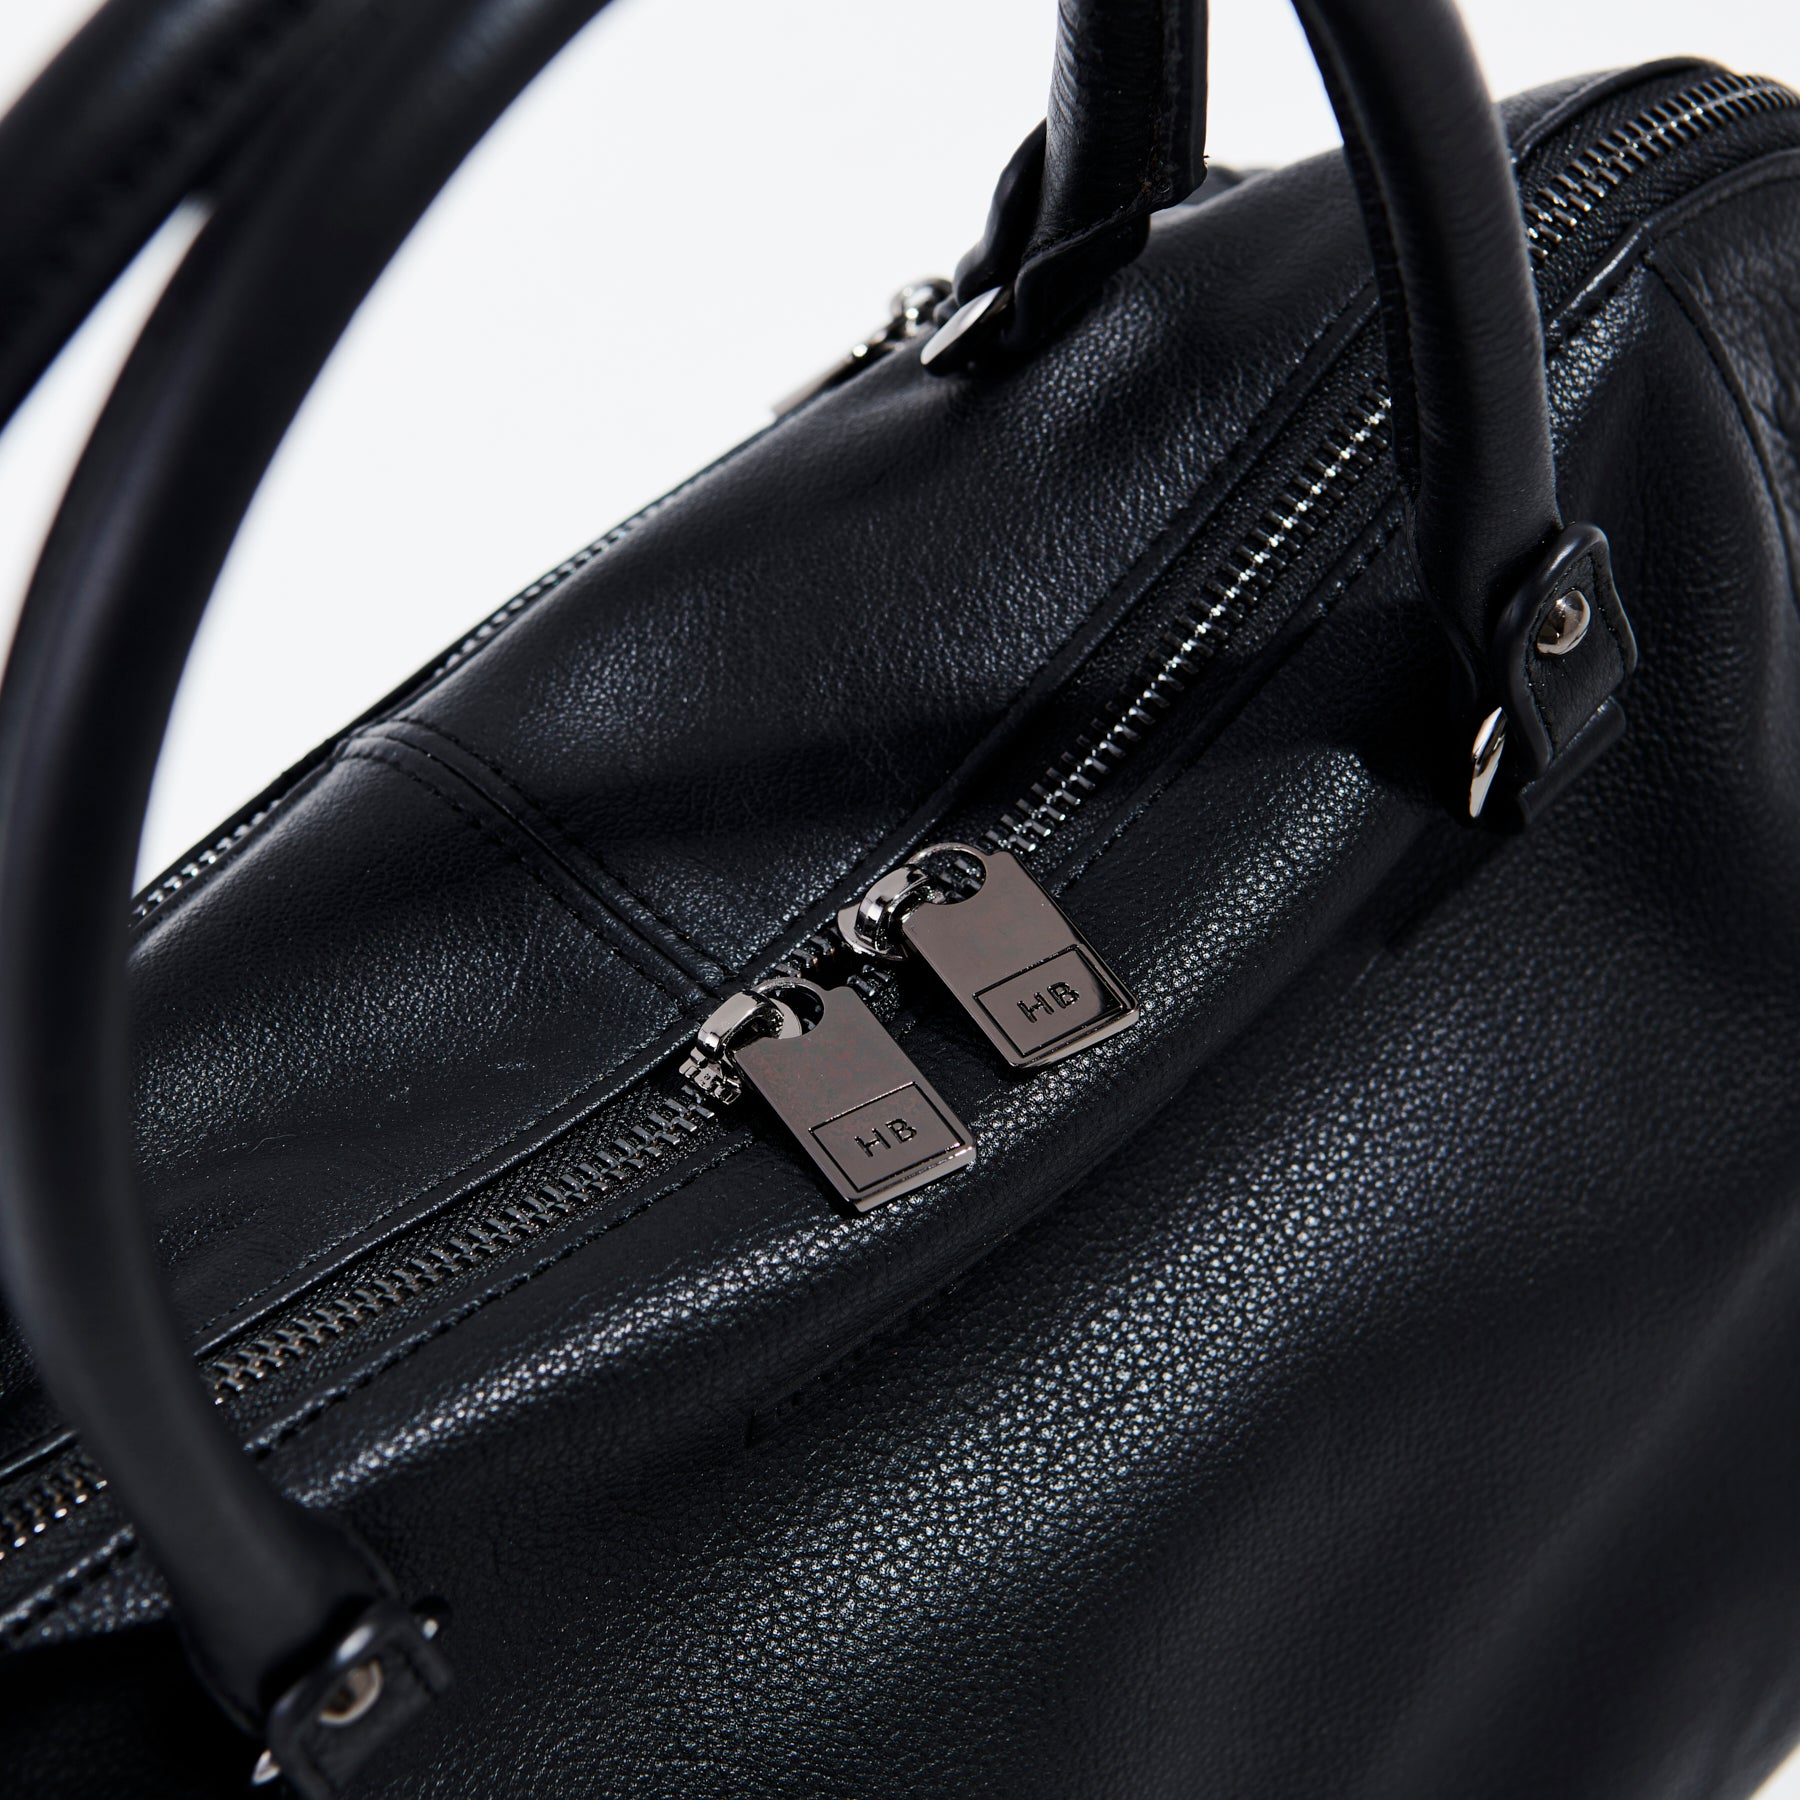 detailed view of double zip of black leather handbag